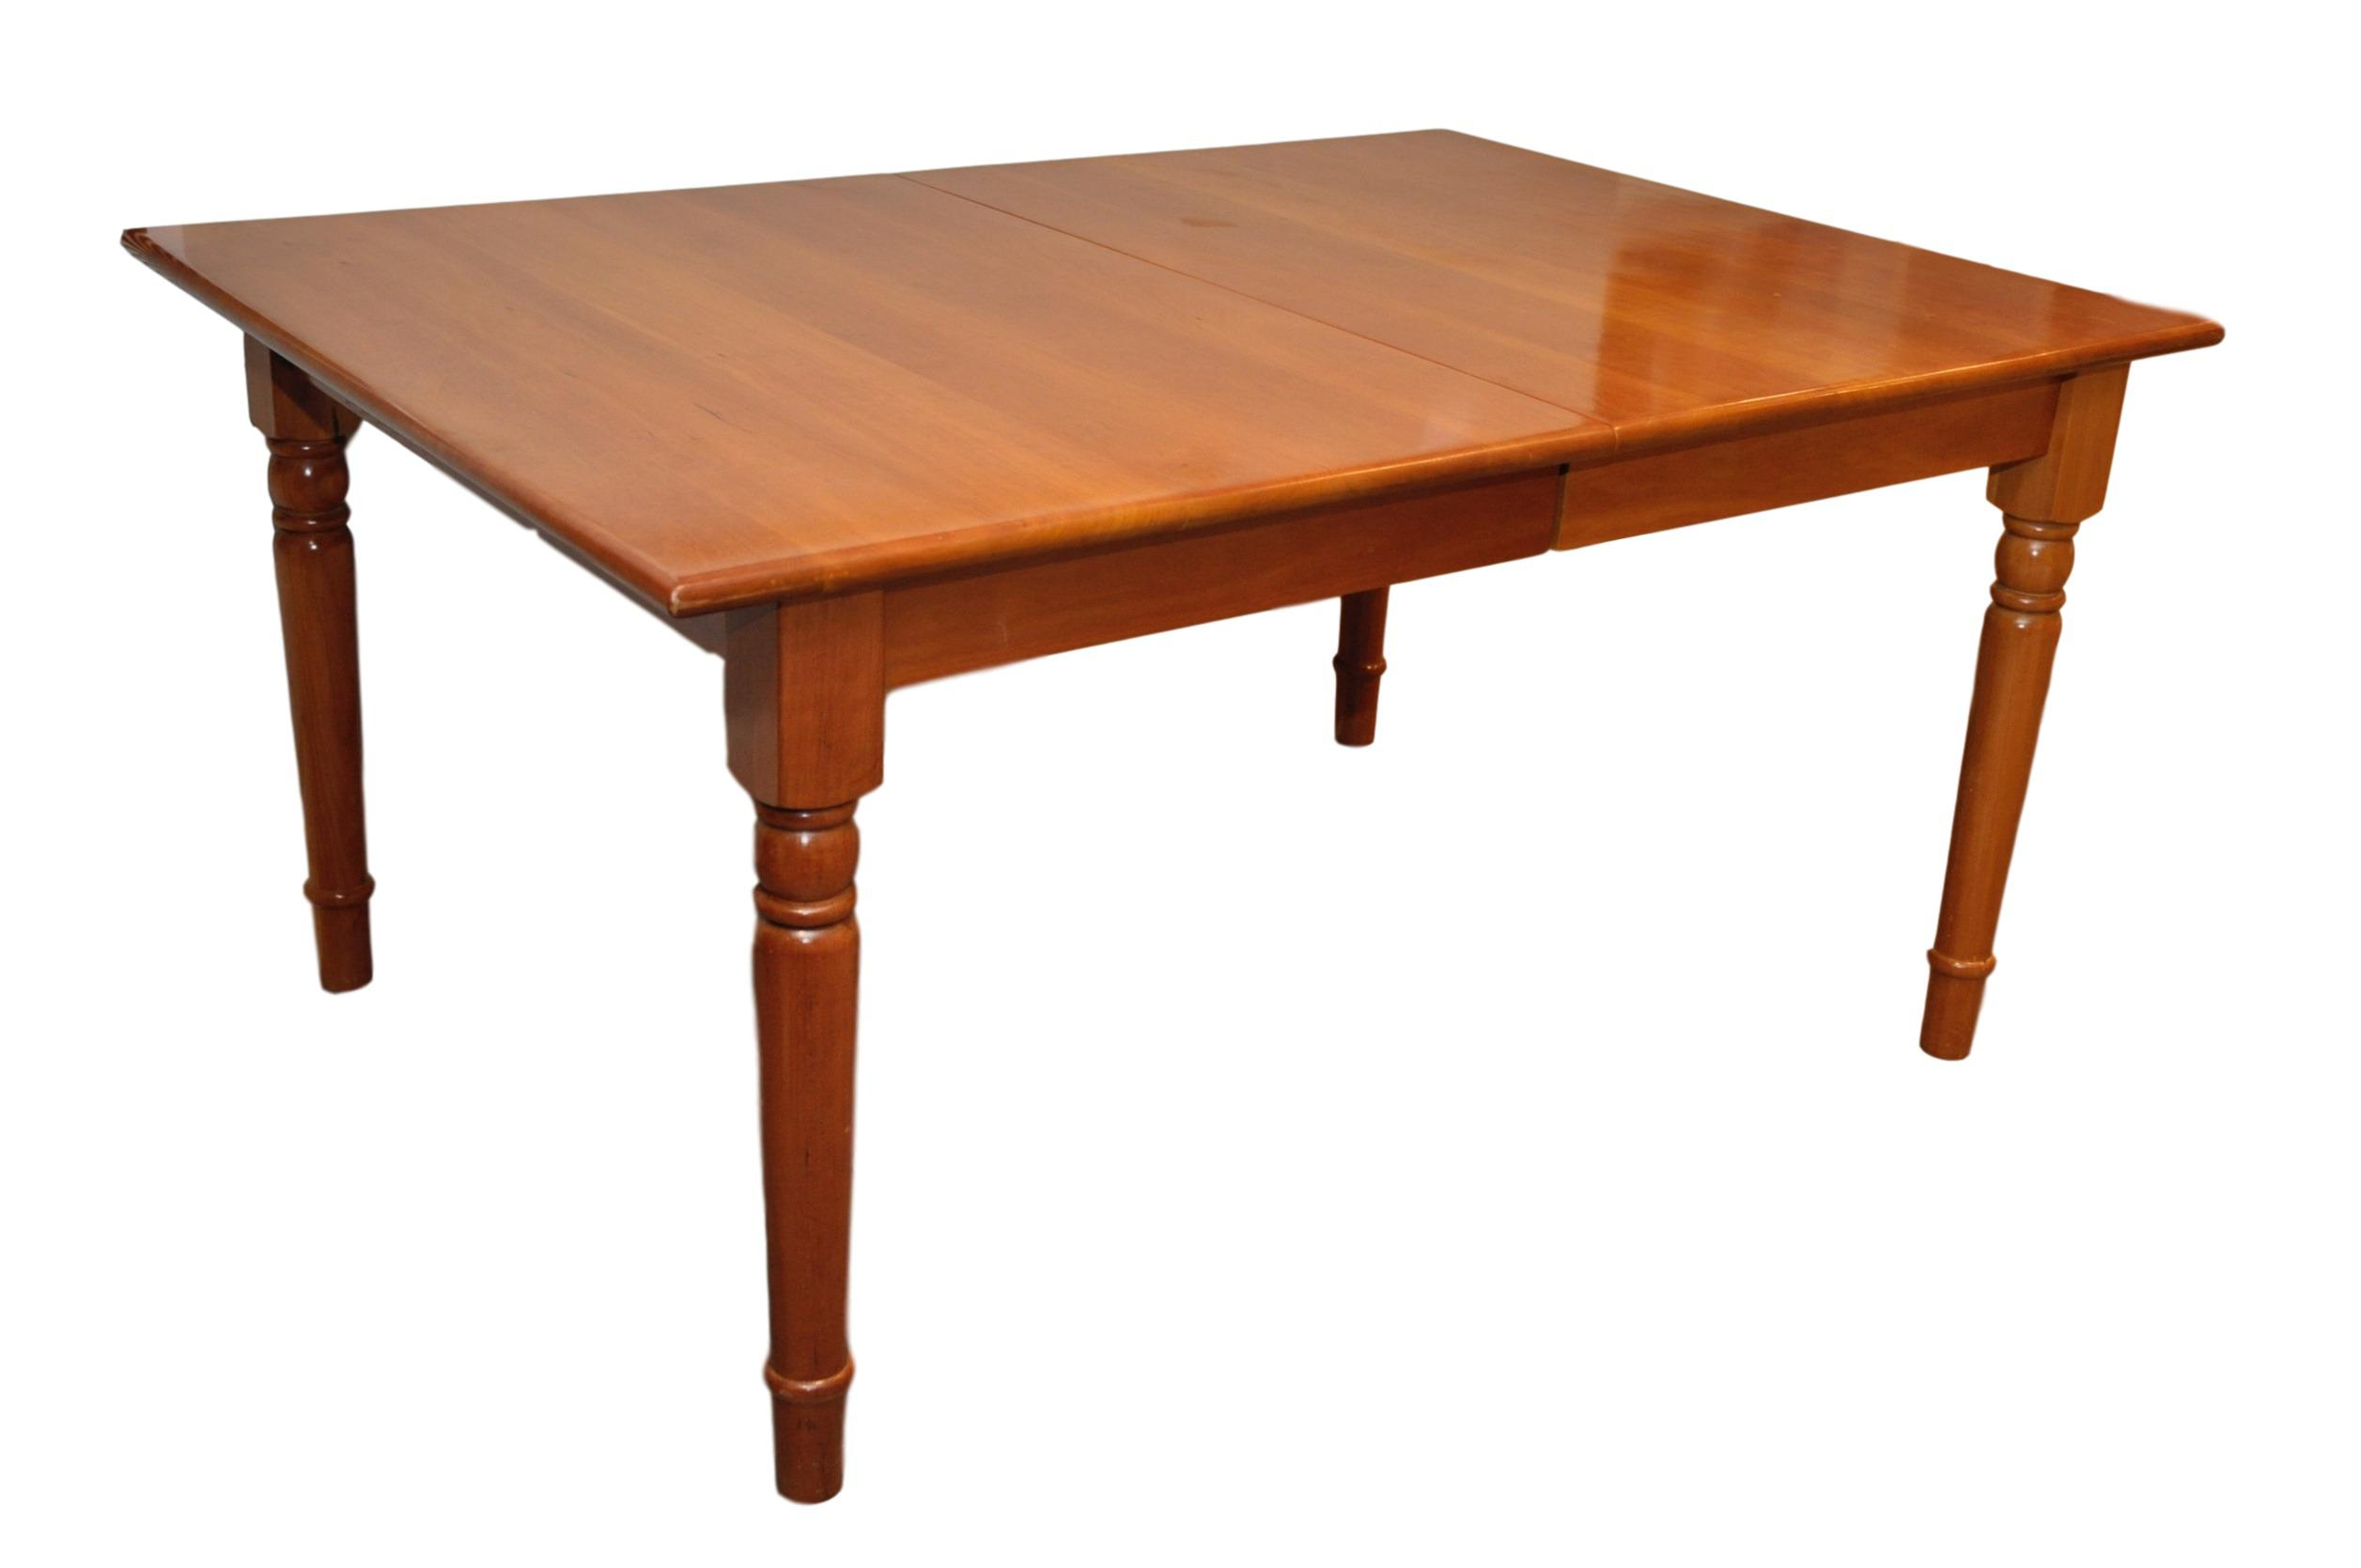 Asher Benjamin Cherry Wood Dining Table | Chairish